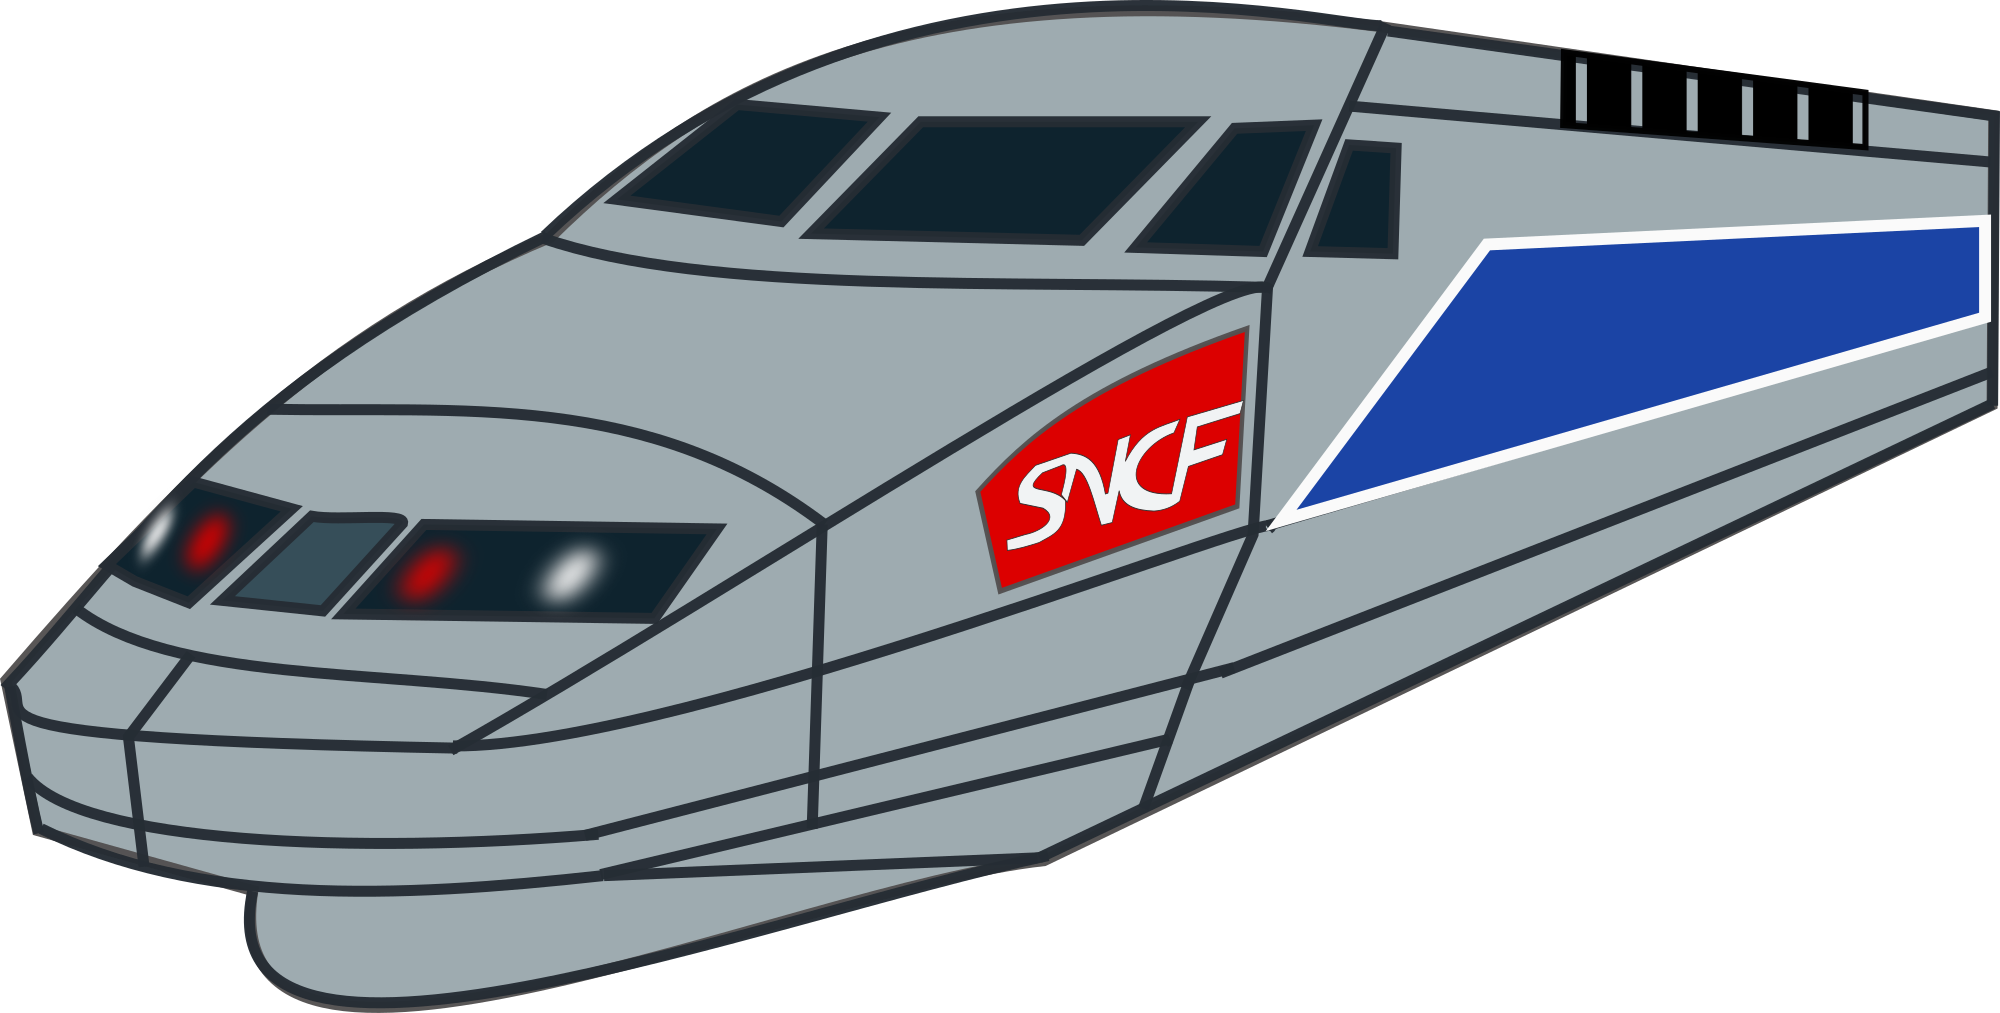 2000x1013 Free Bullet Train Clipart Clipart And Vector Image